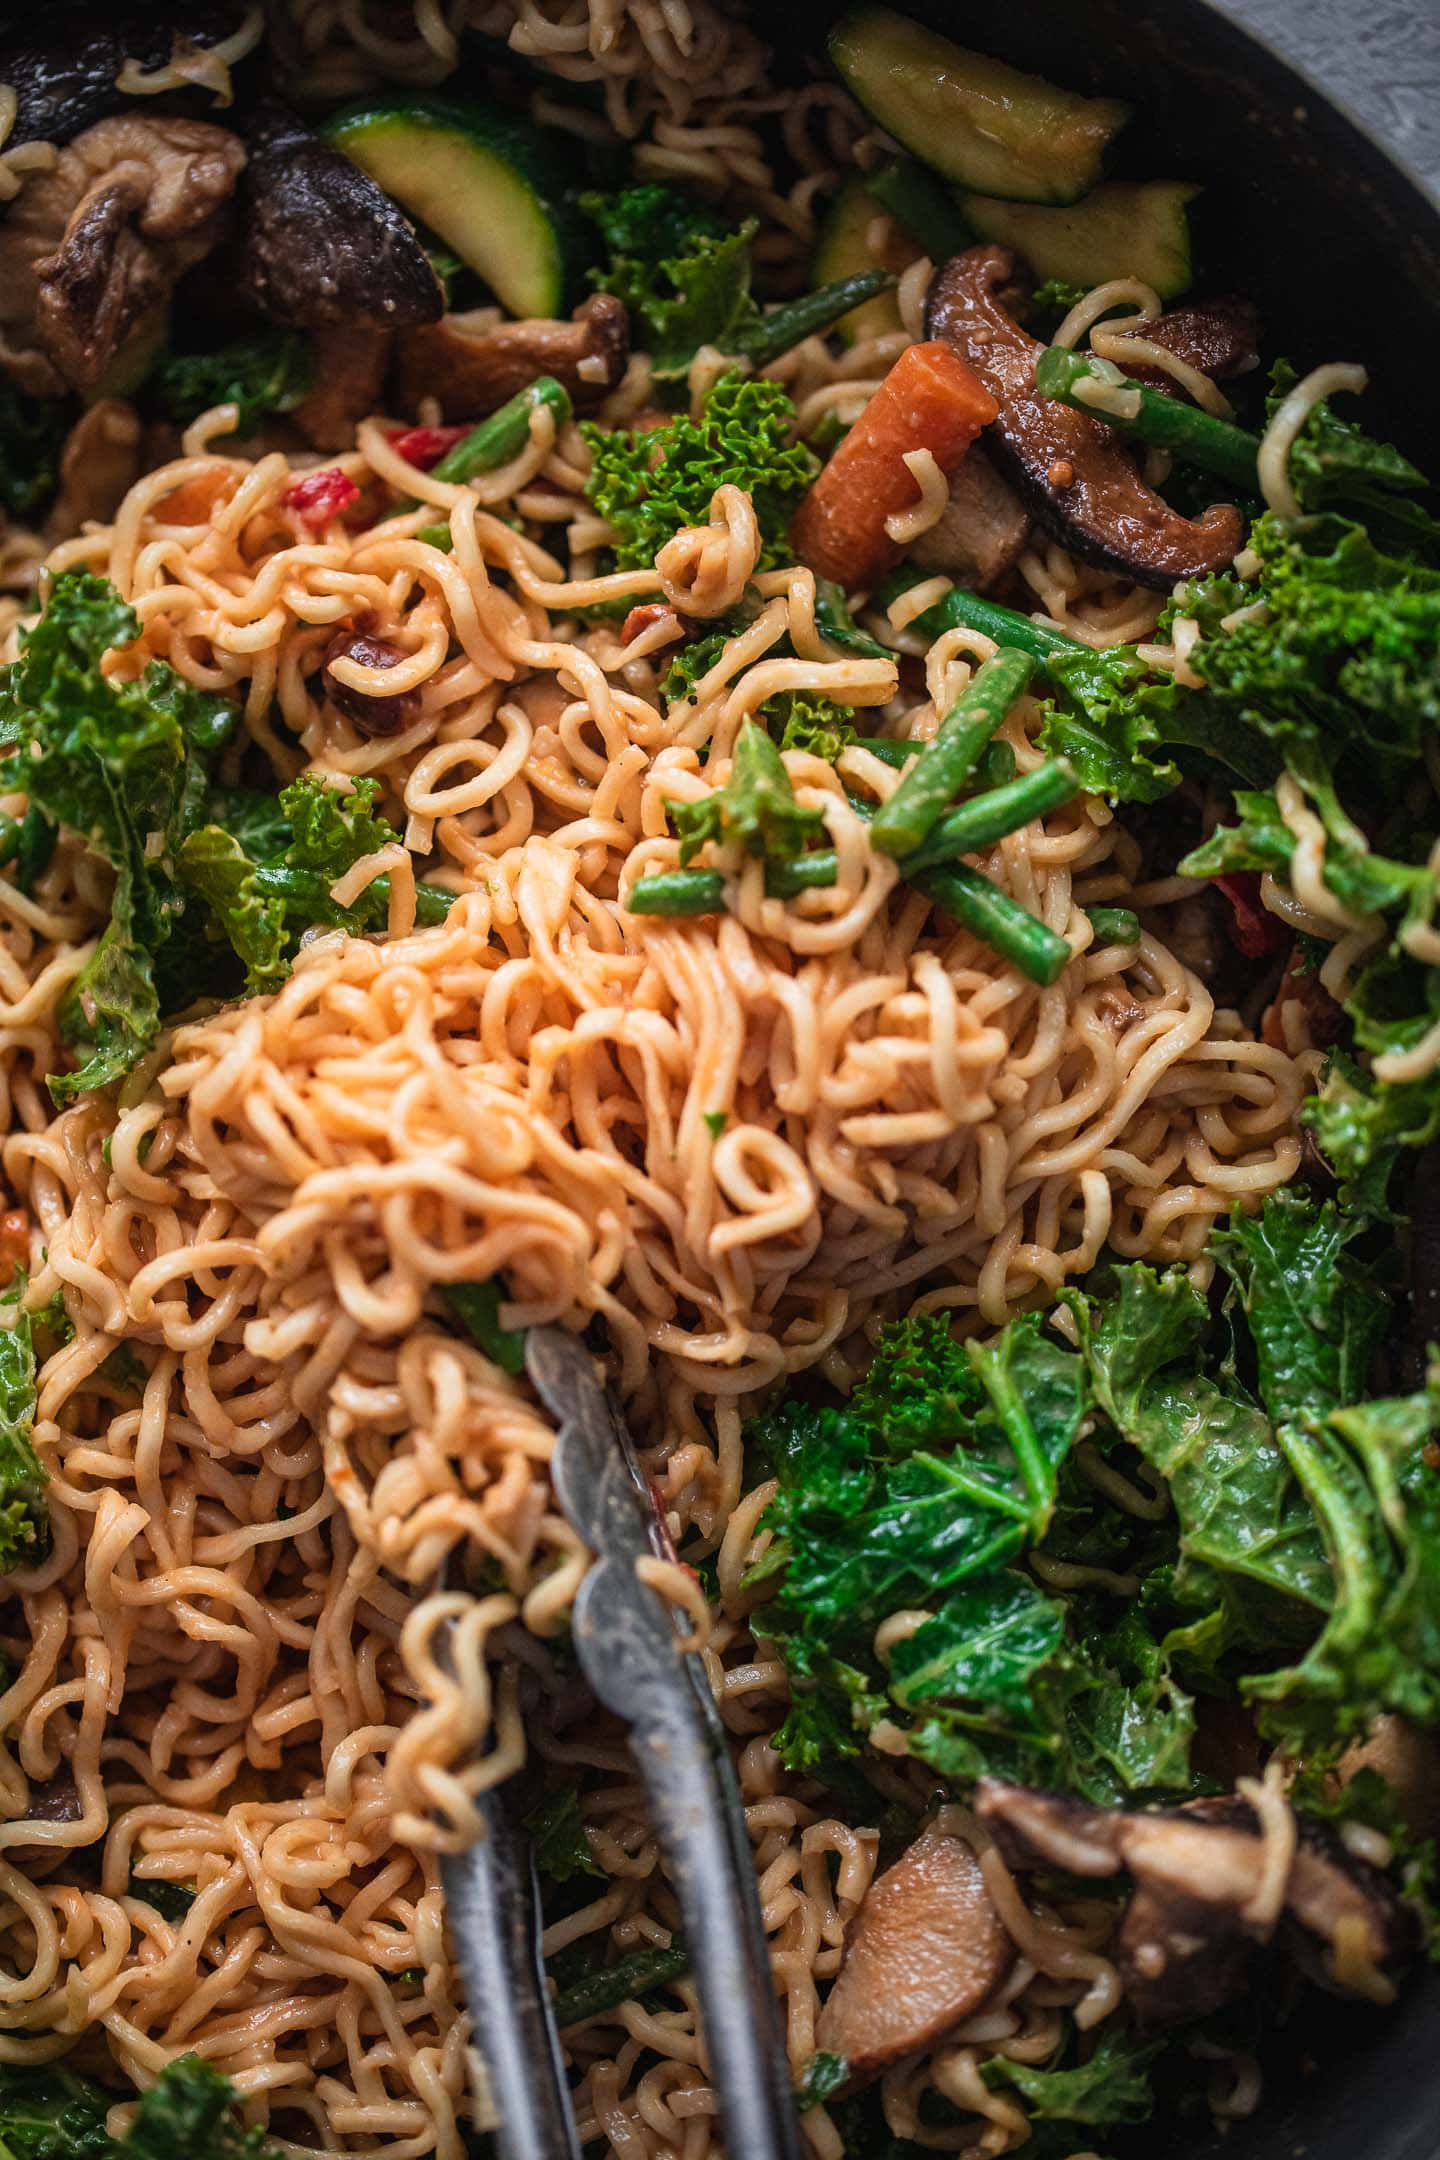 Vegan noodles with vegetables in a pan